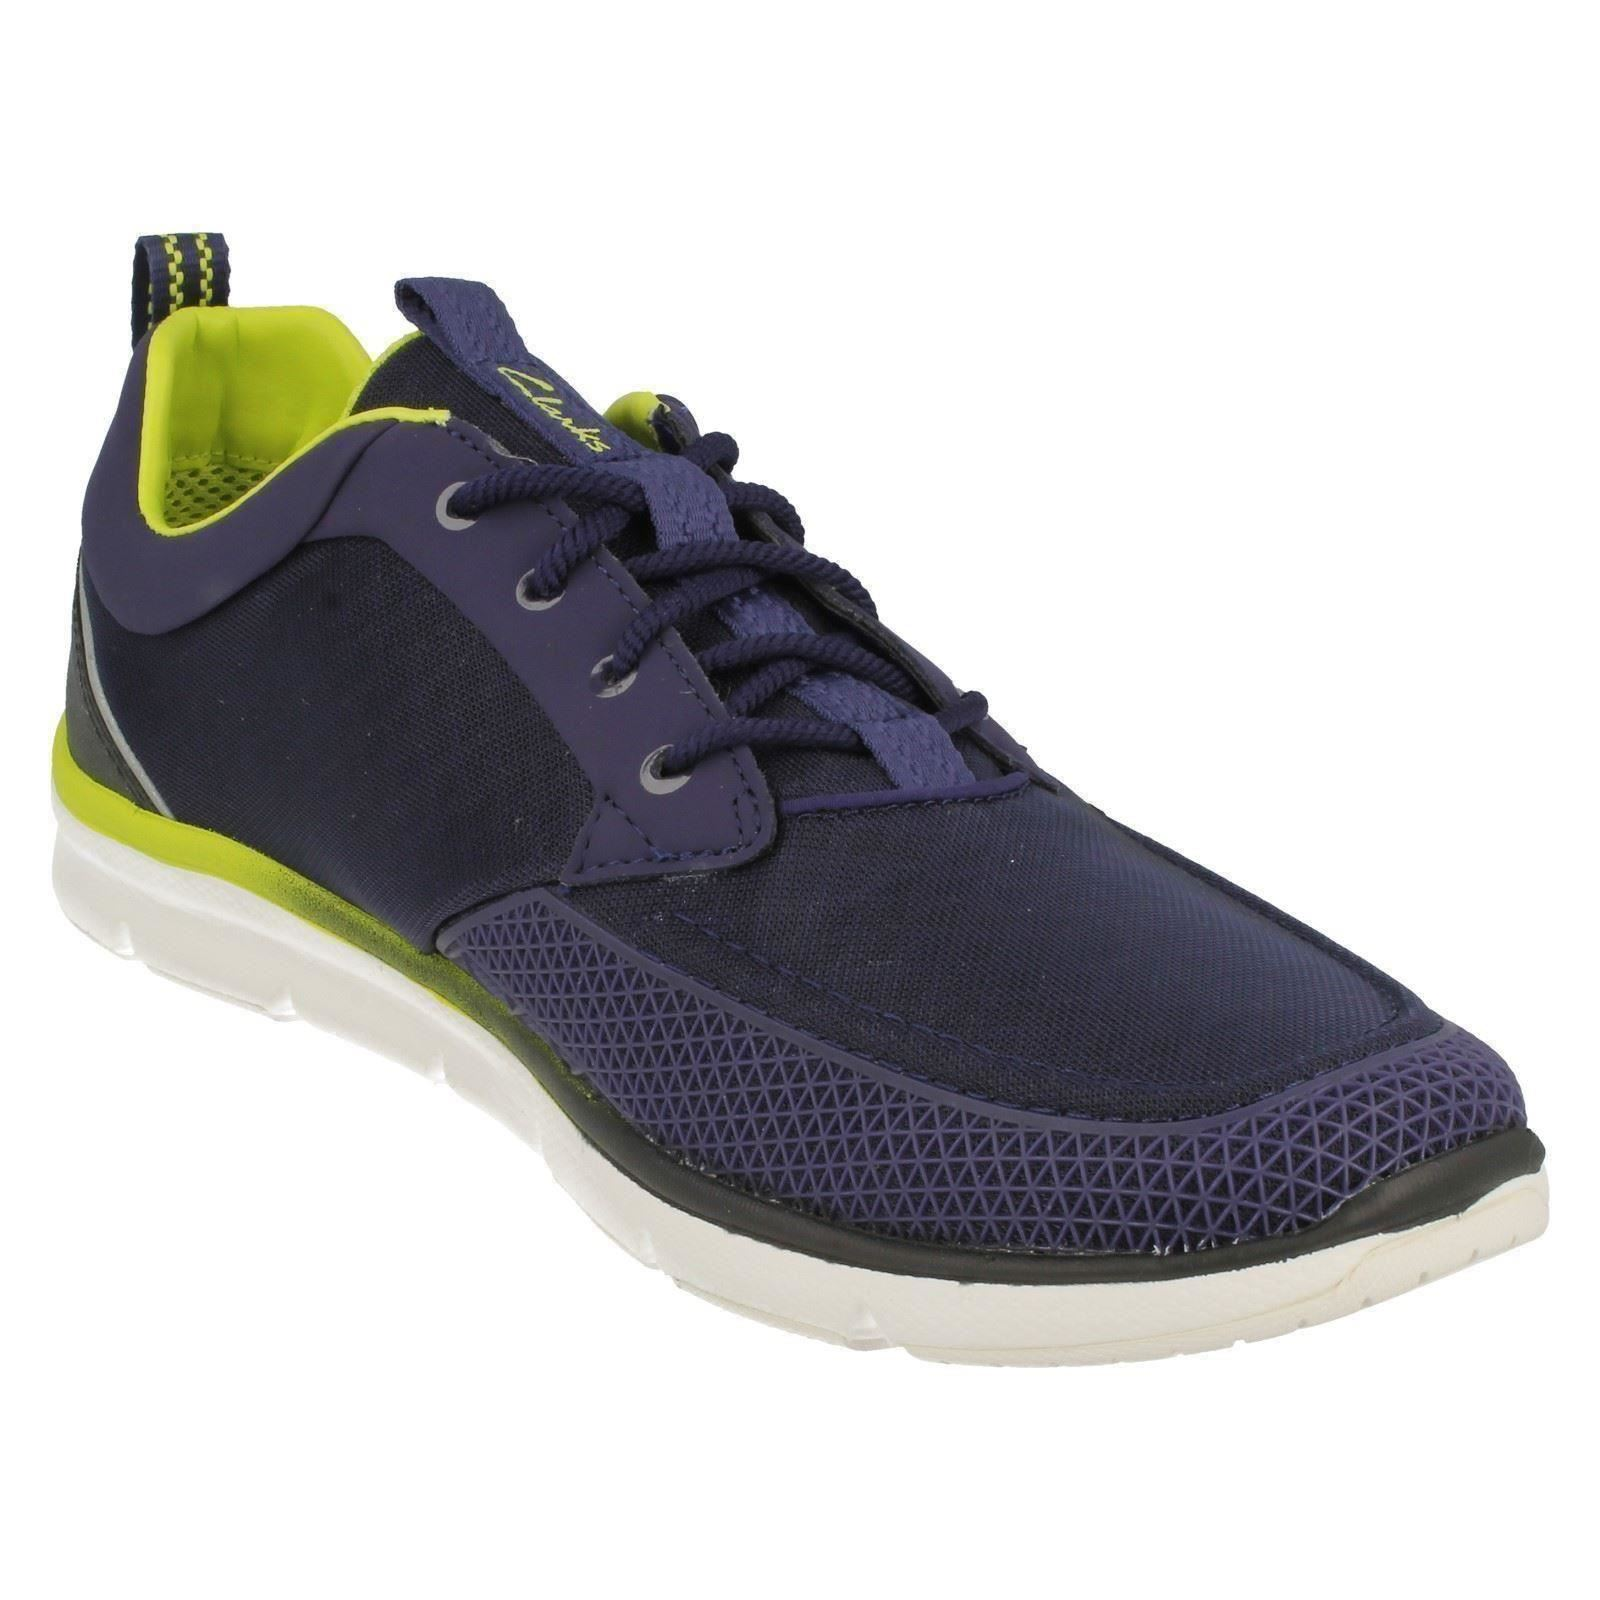 Mens Clarks Sports Shoes Orson Lite